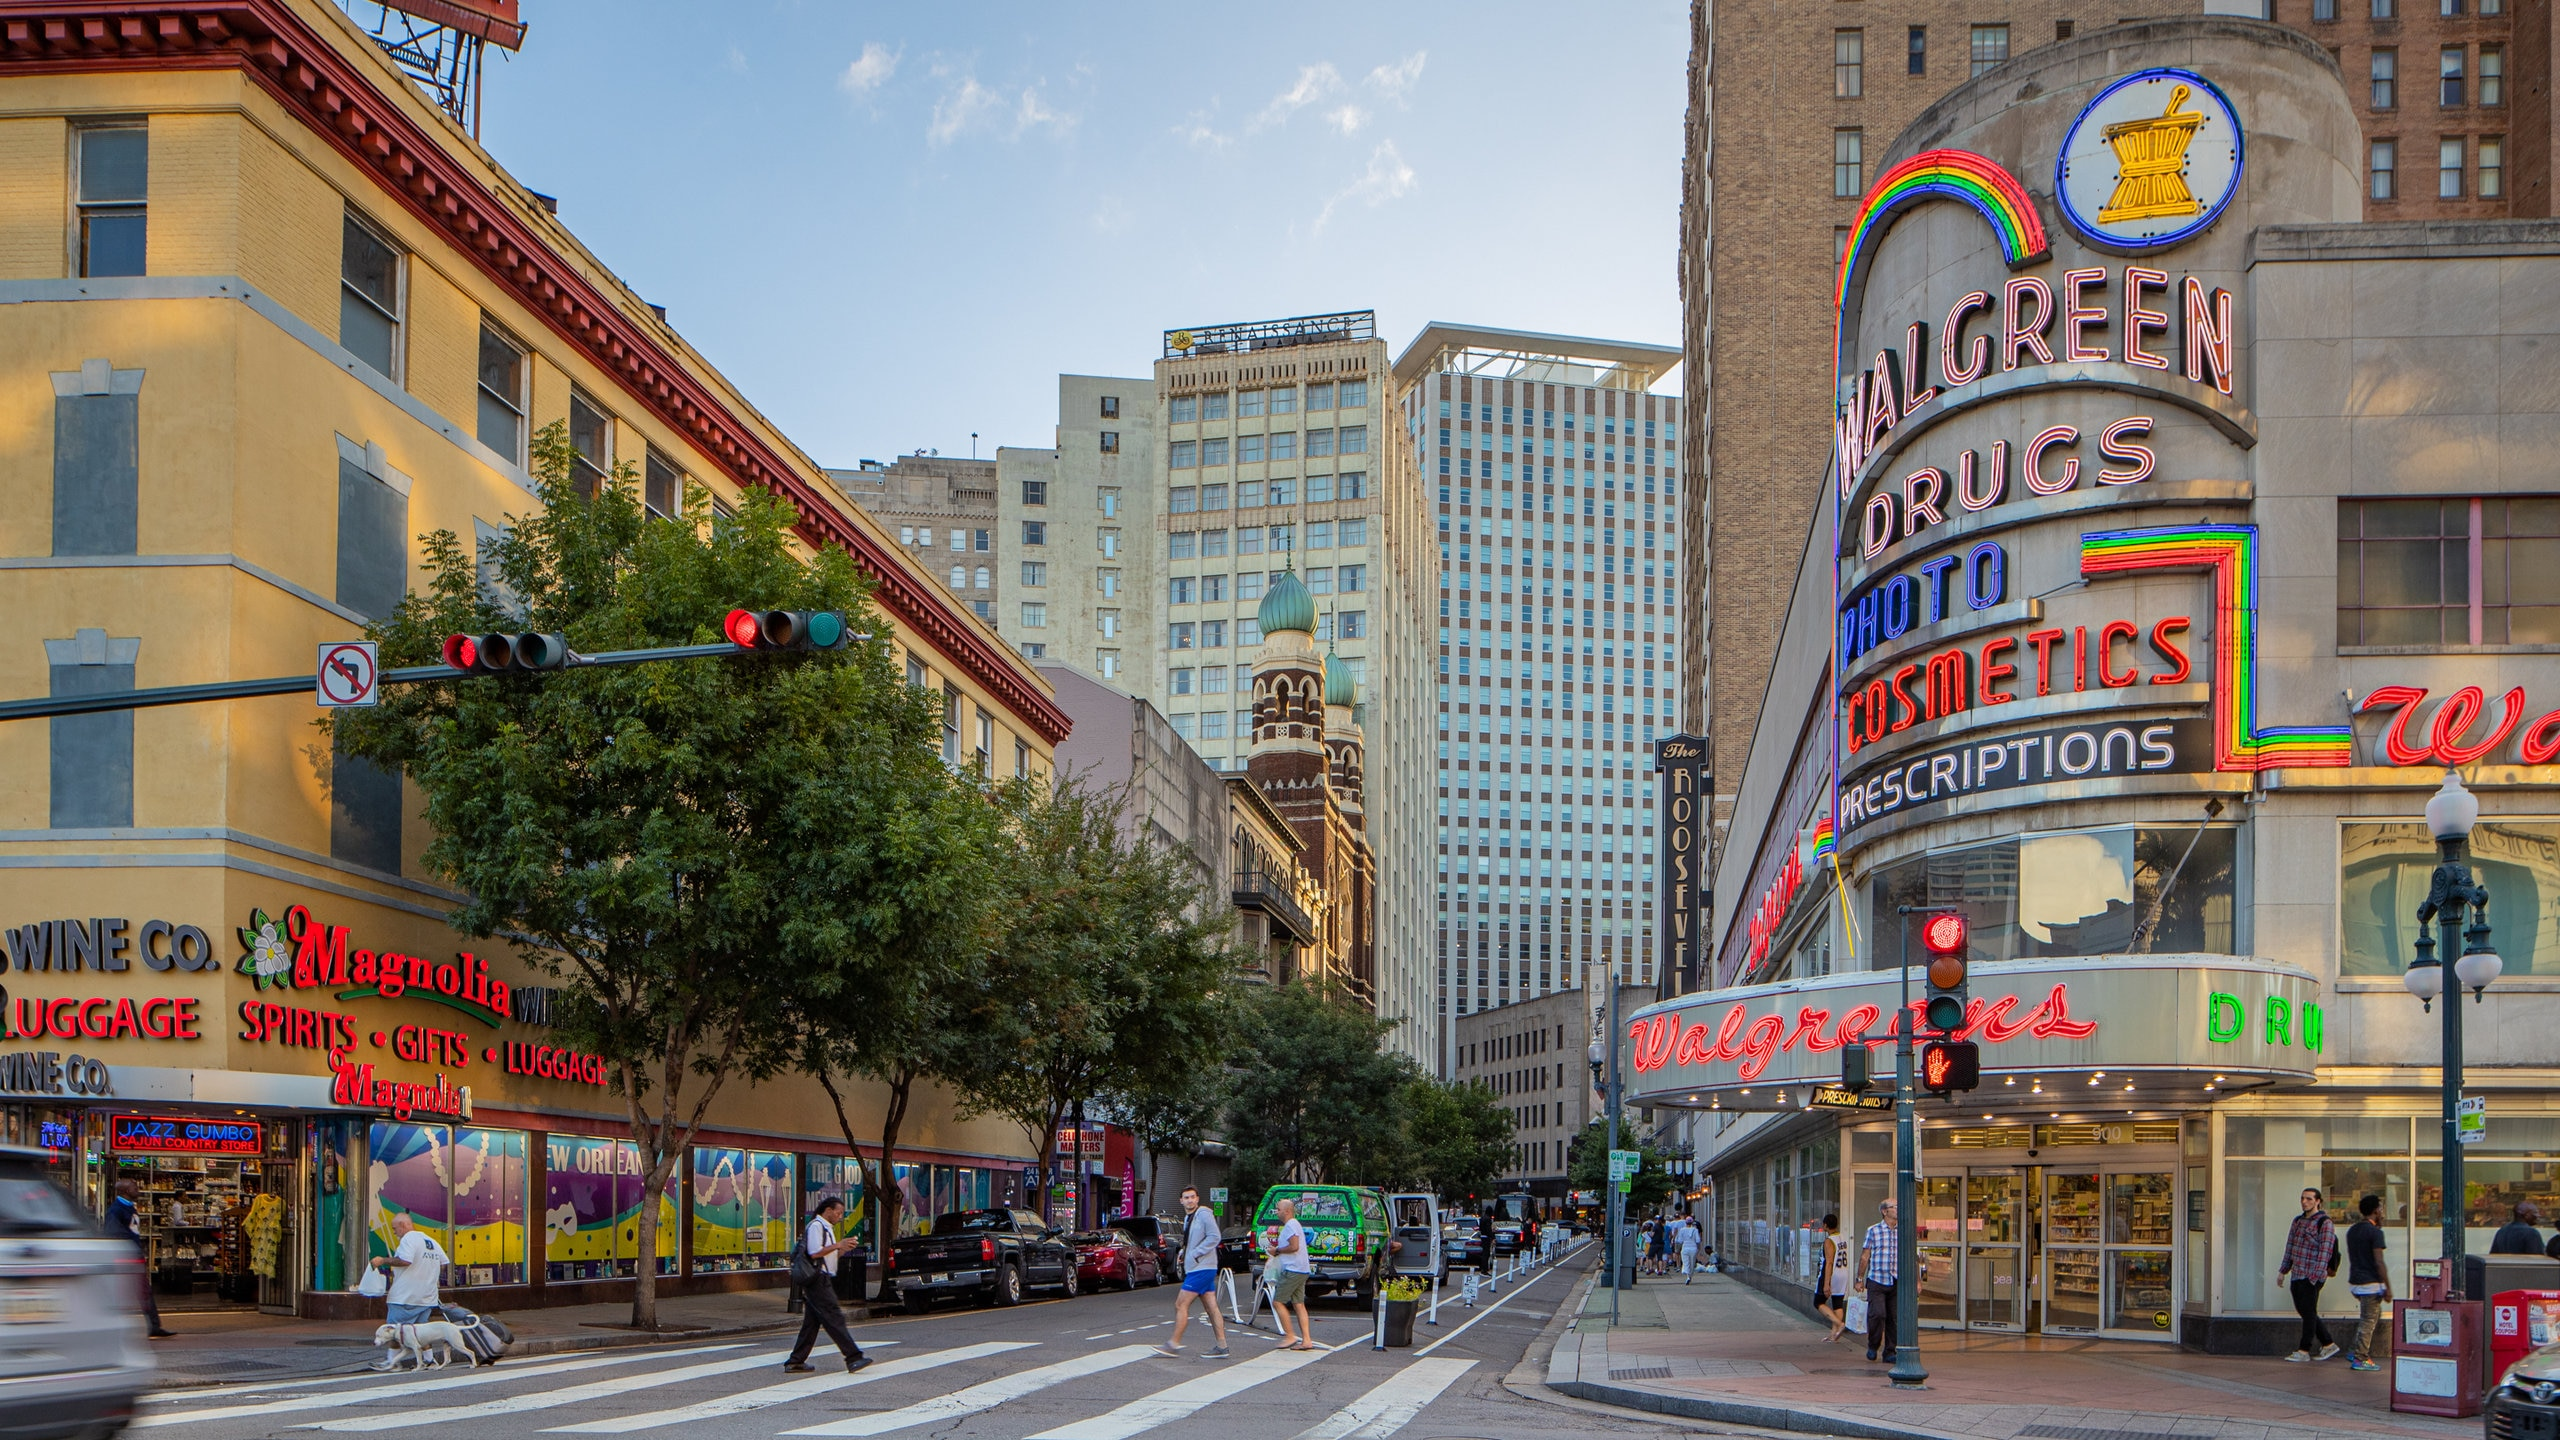 New Orleans Central Business District, New Orleans, Louisiana, United States of America